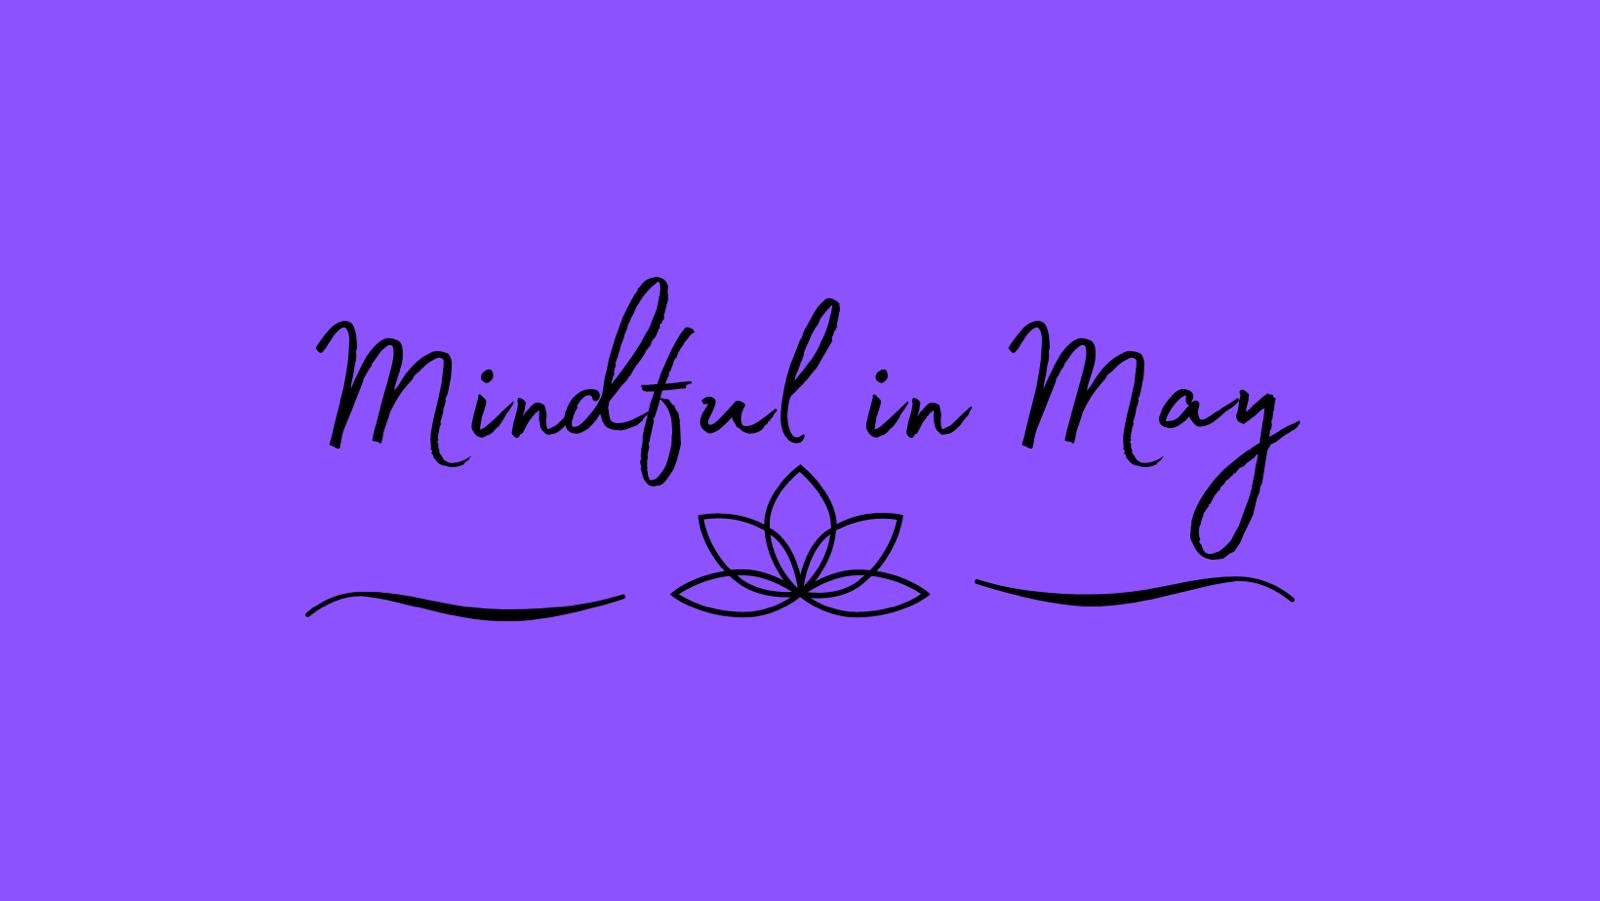 Mindful in May written on a purple background with lotus flower